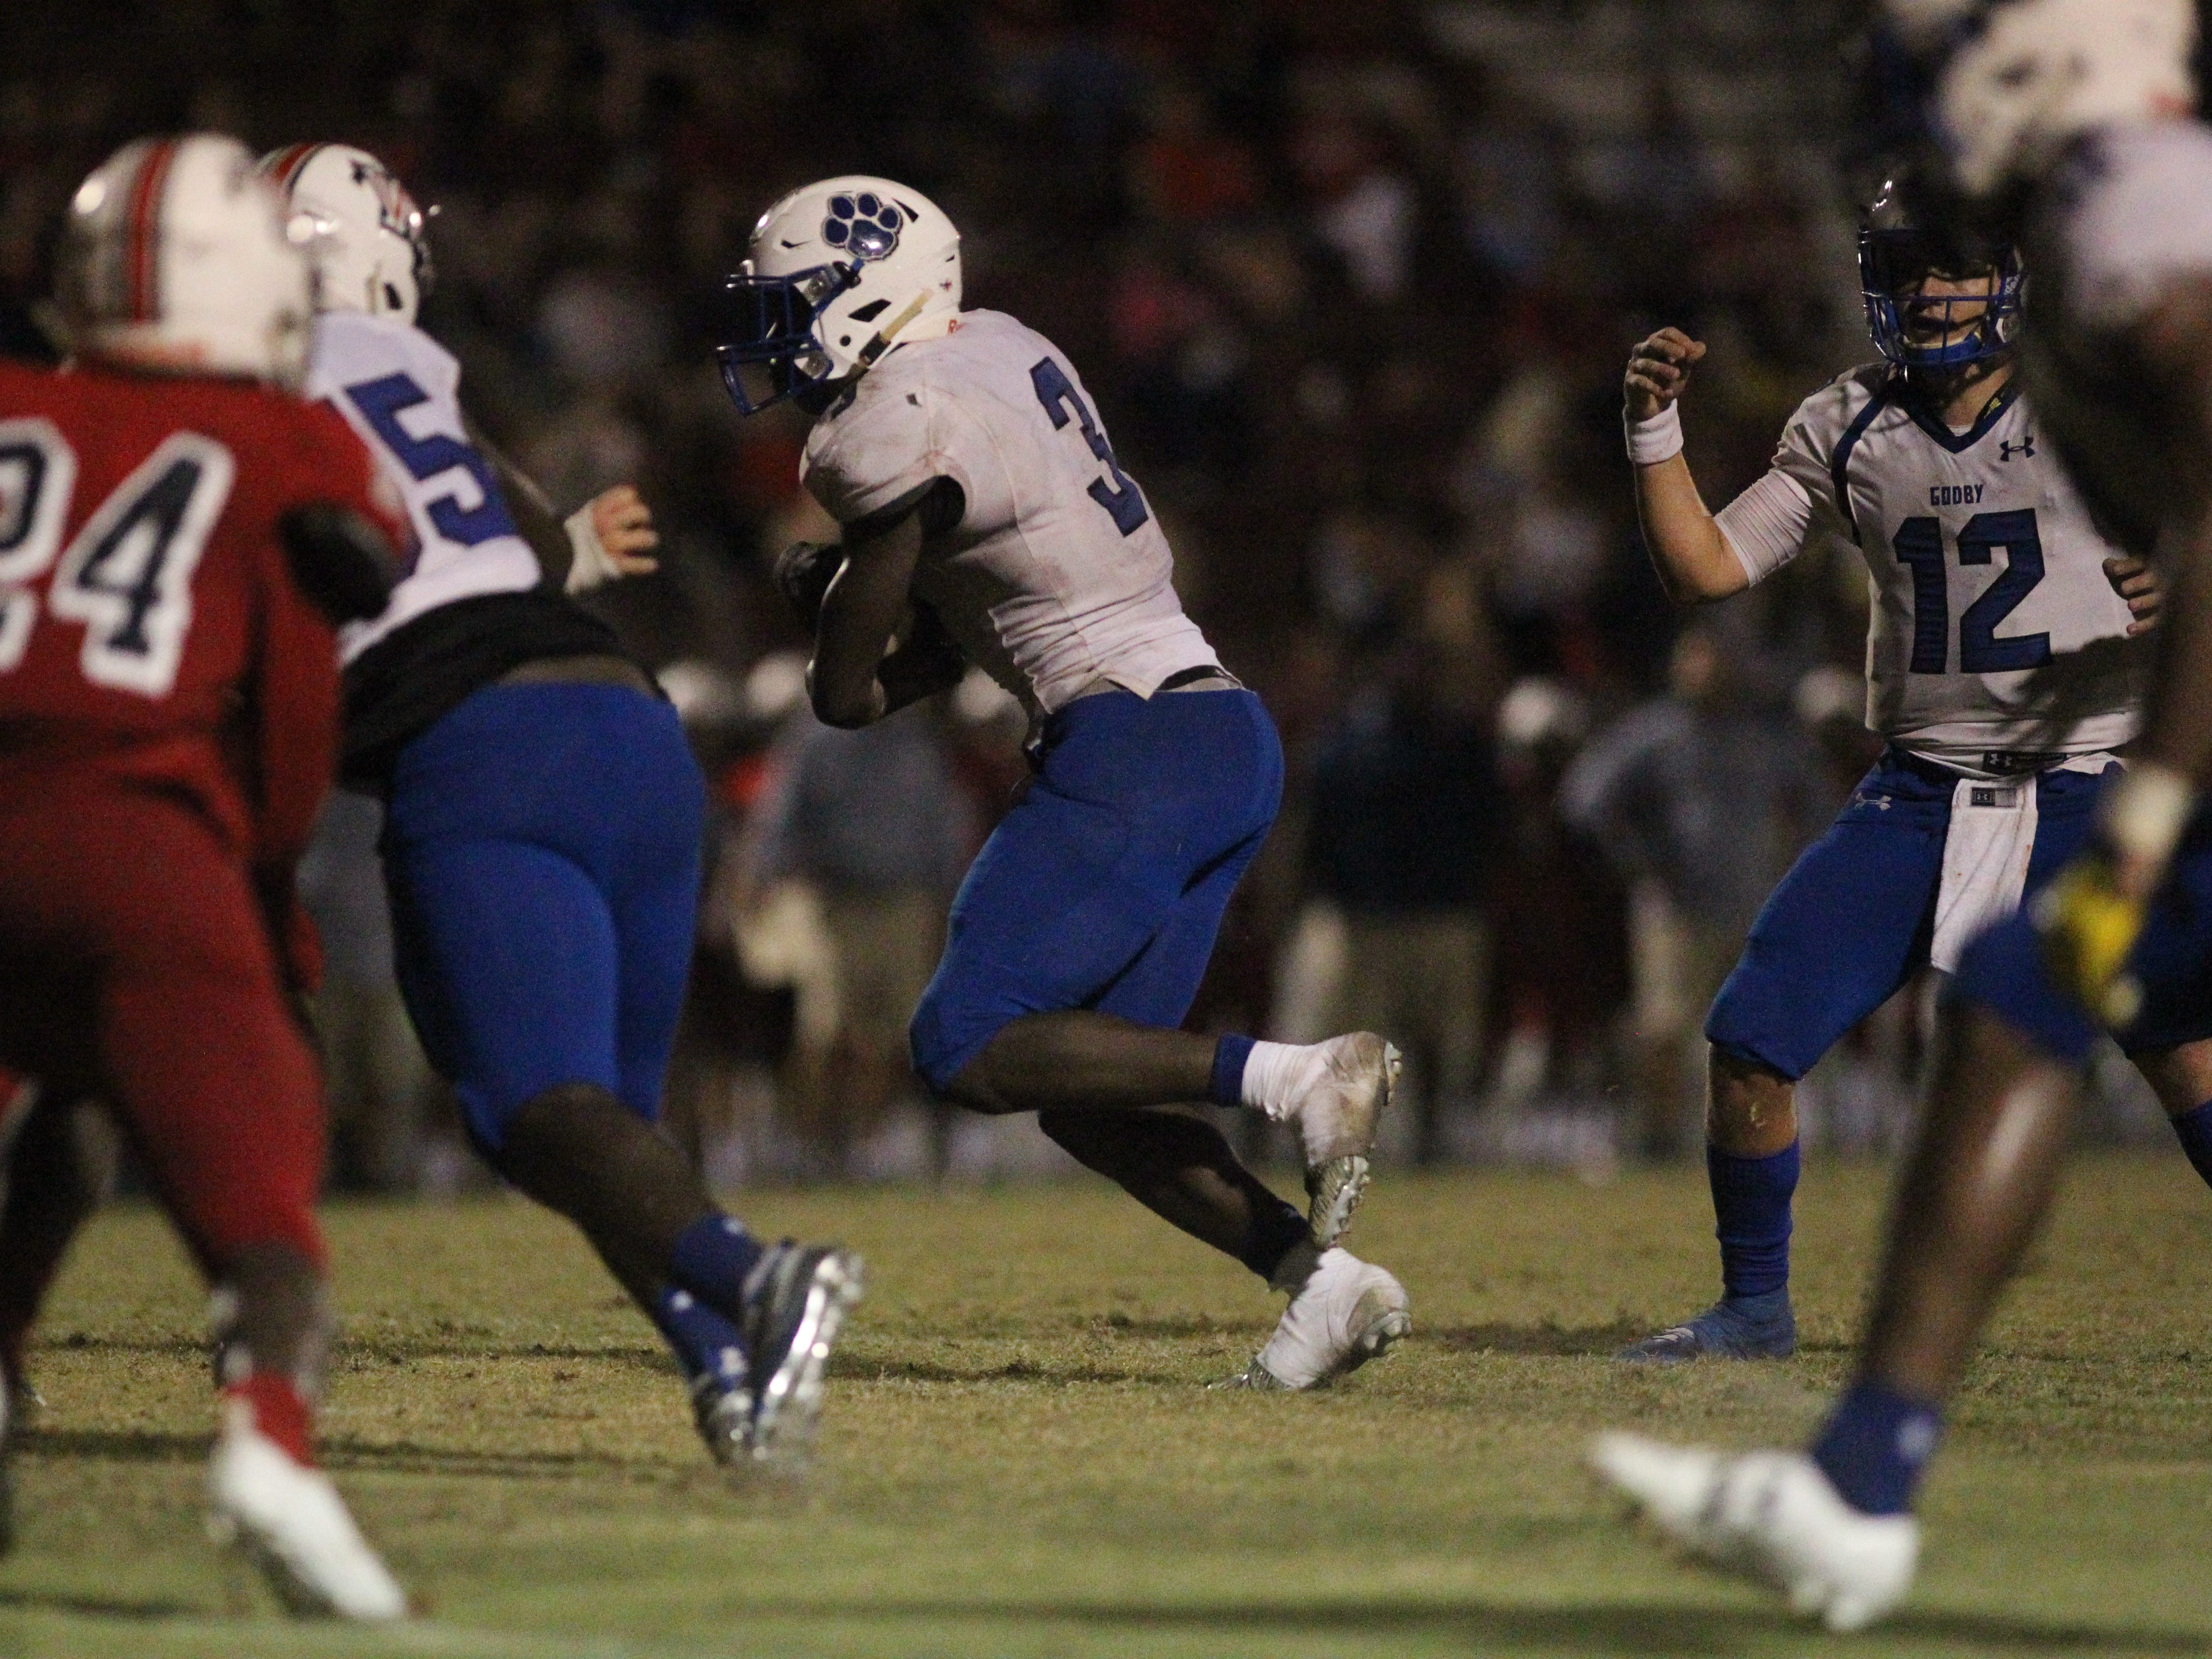 Godby running back Jaquez Yant looks for running room as the Cougars beat Wakulla 37-13 on Friday night.